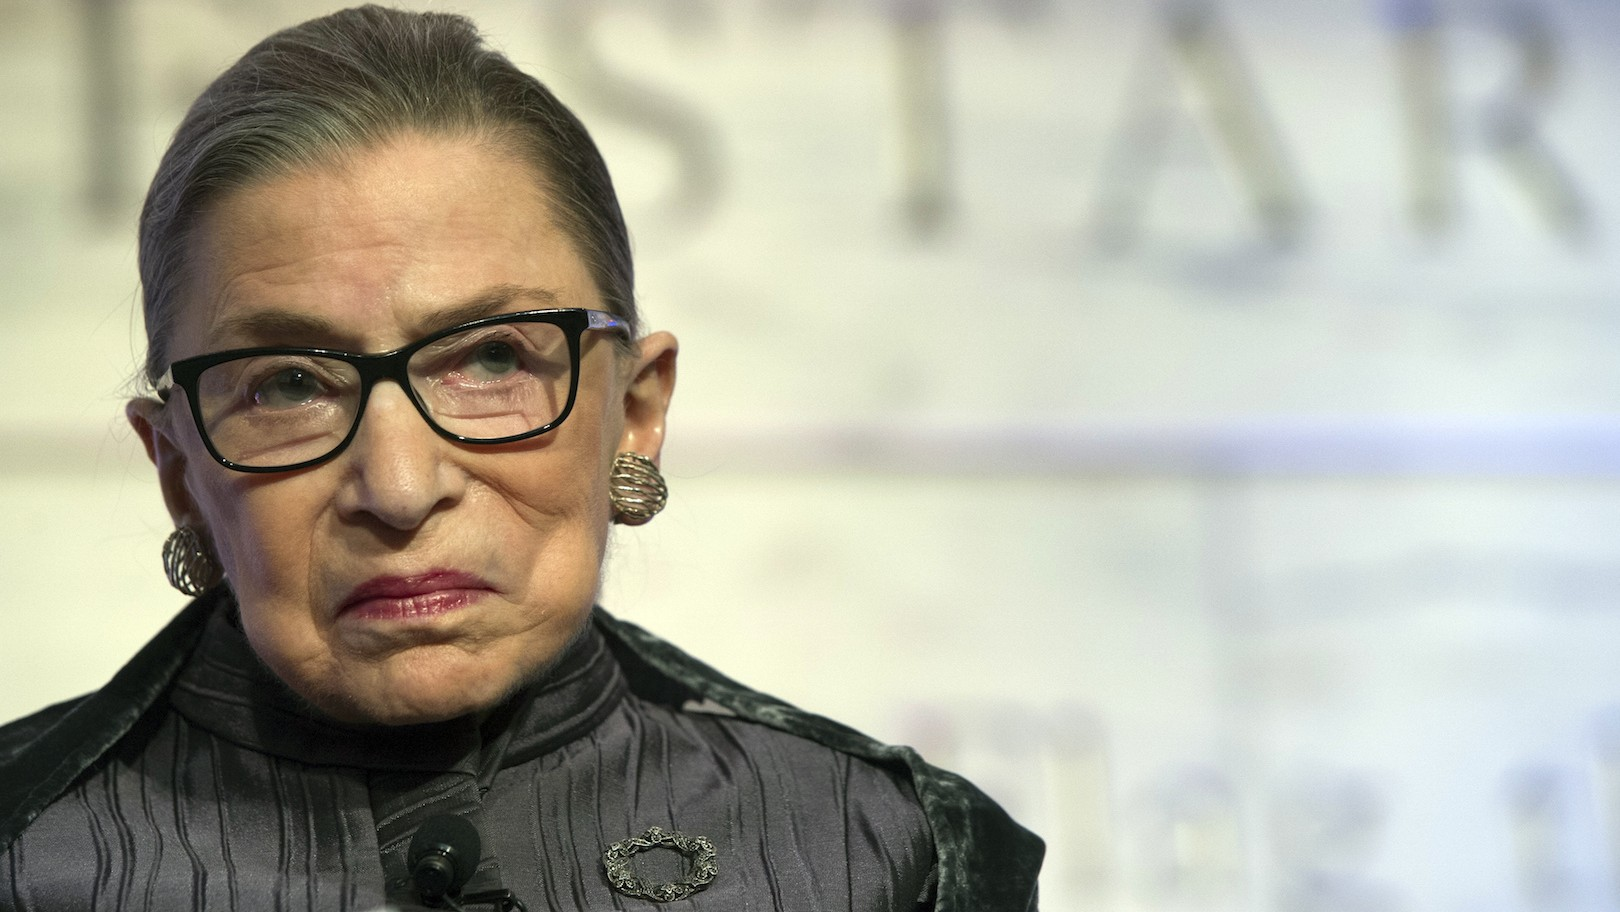 Donald Trump says Ruth Bader Ginsburg's 'mind is shot' and she should resign